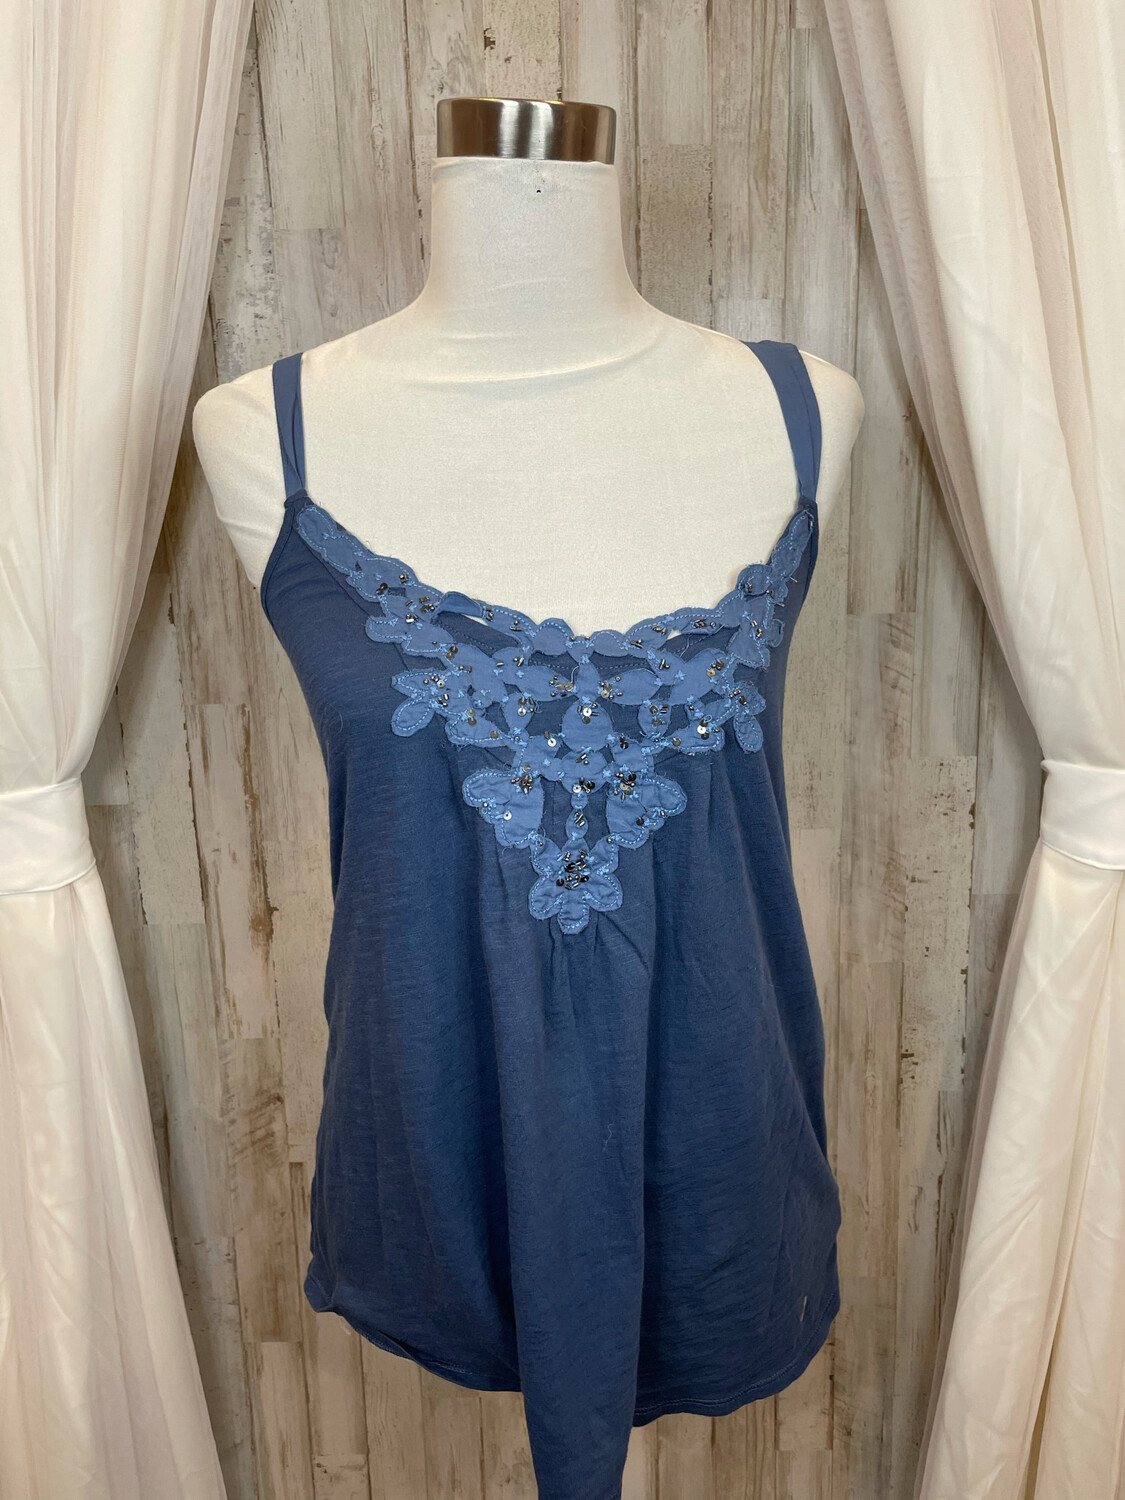 American Eagle Steel Blue Tank w/Lace & Bead Accent - M